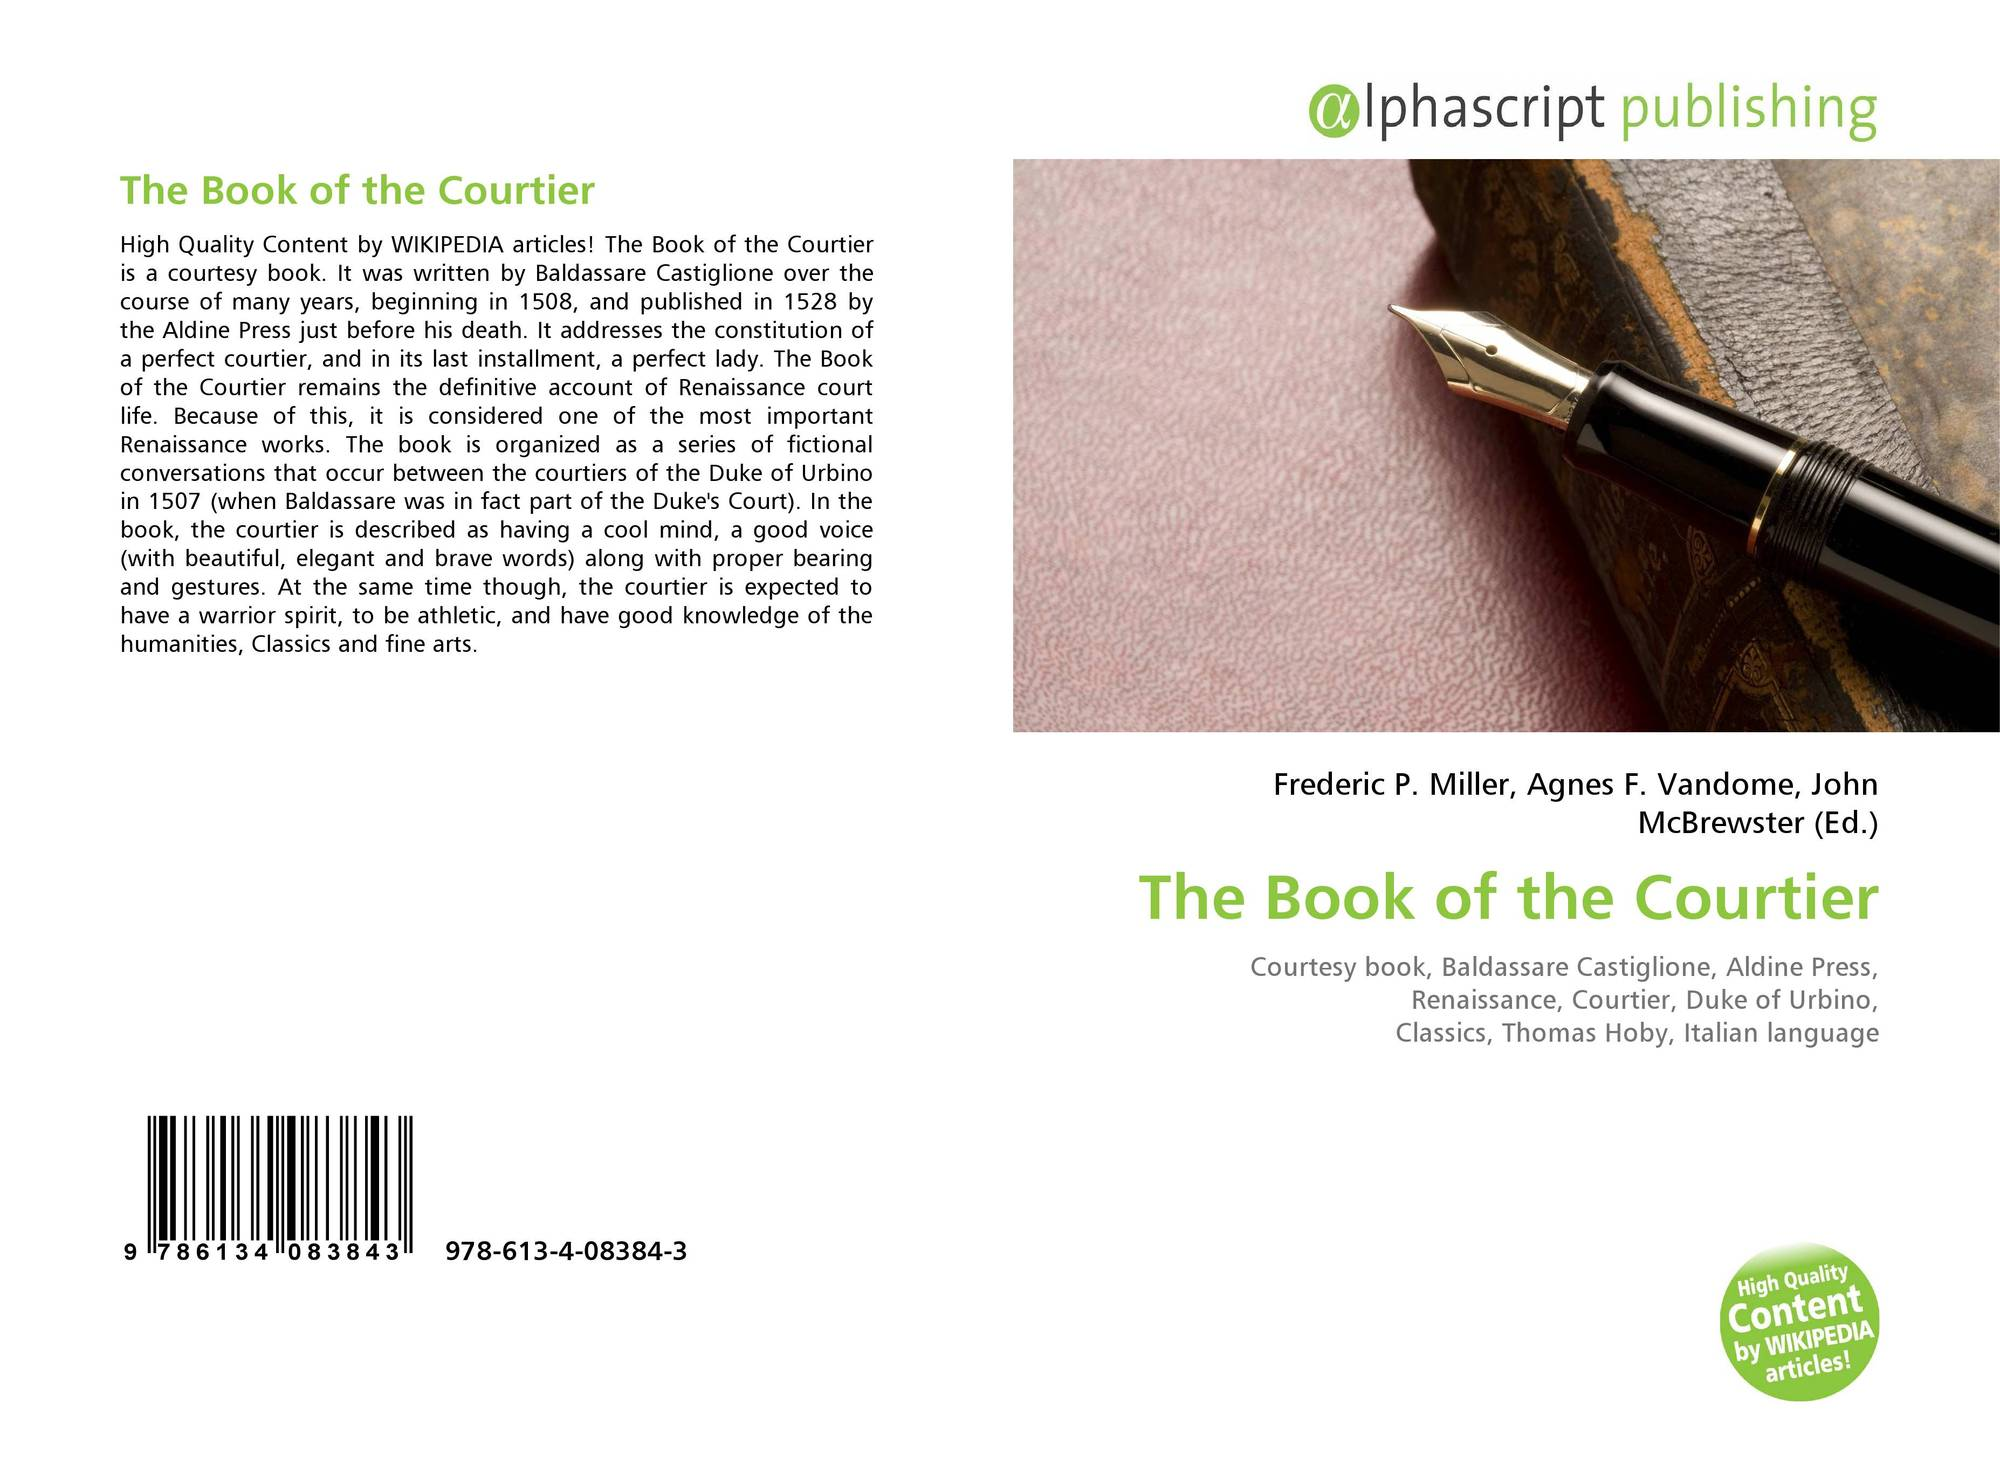 an analysis of courtiers in the book of the courtier by baldassare castiglione Baldassare castiglione's the book of the courtier exemplified italian renaissance humanist ideals by making use of the author's own memory of conversations in court at urbino.